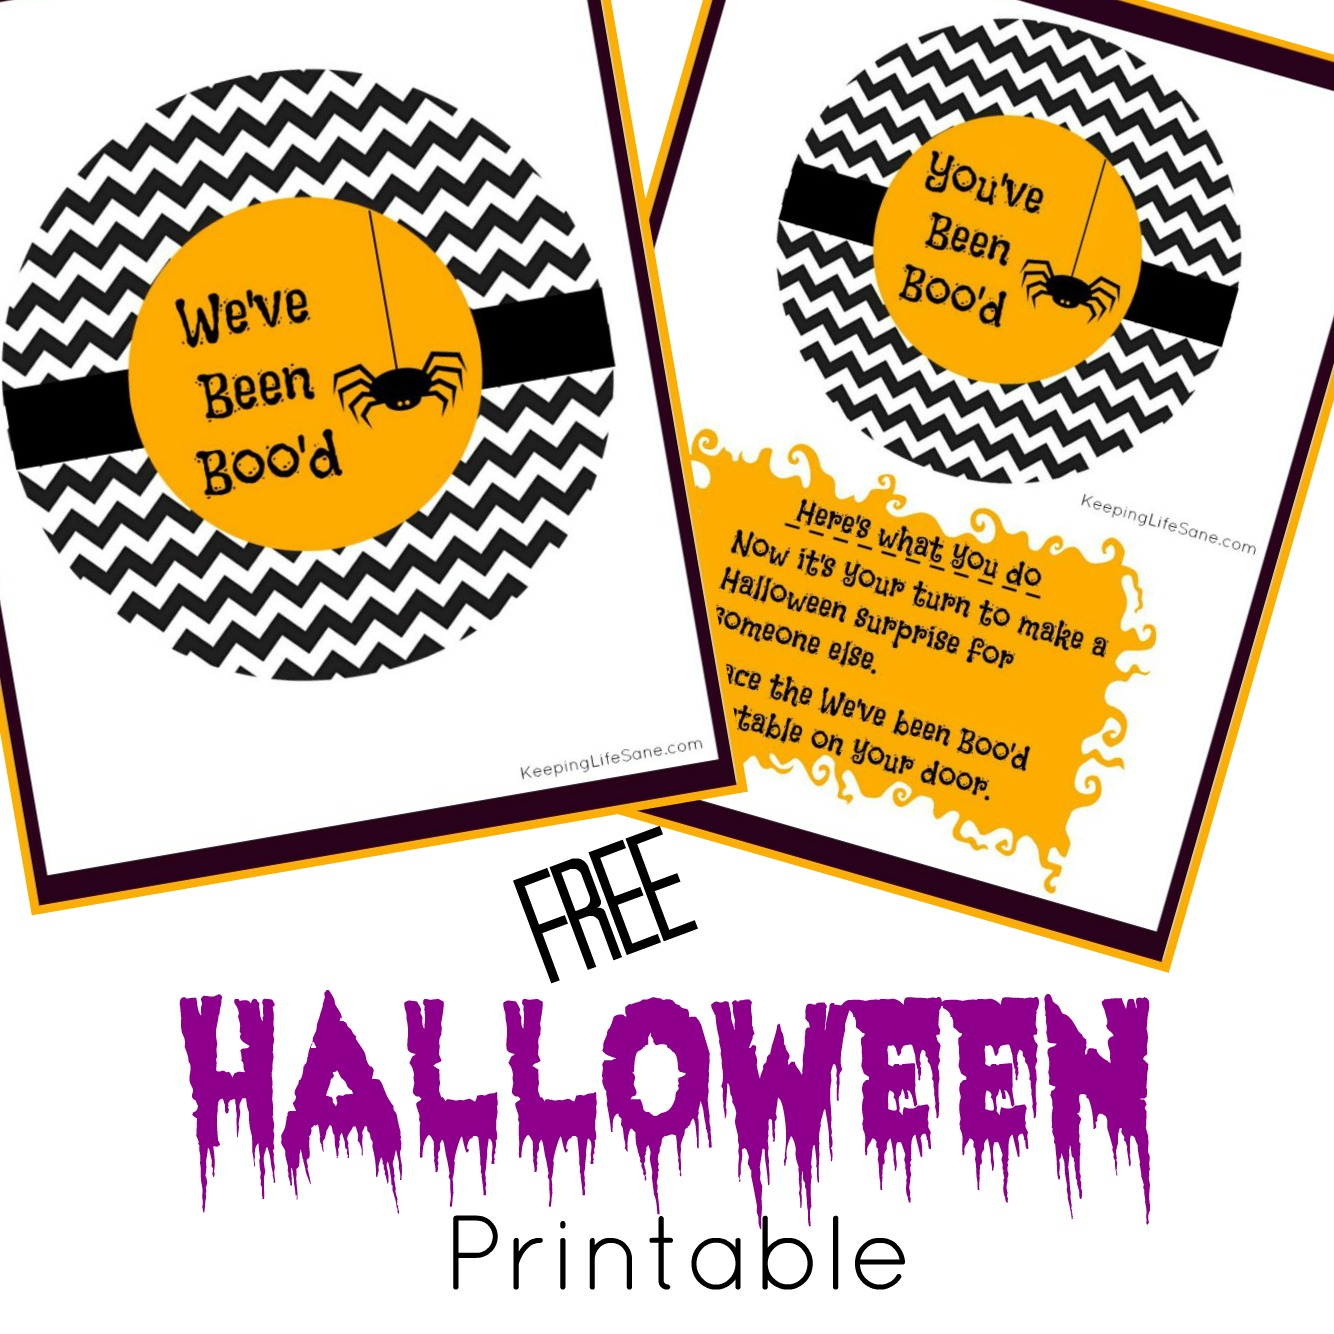 Get your FREE You've Been Boo'd printable here! Start a fun and new family tradition this fall. You're kids are going to love it!